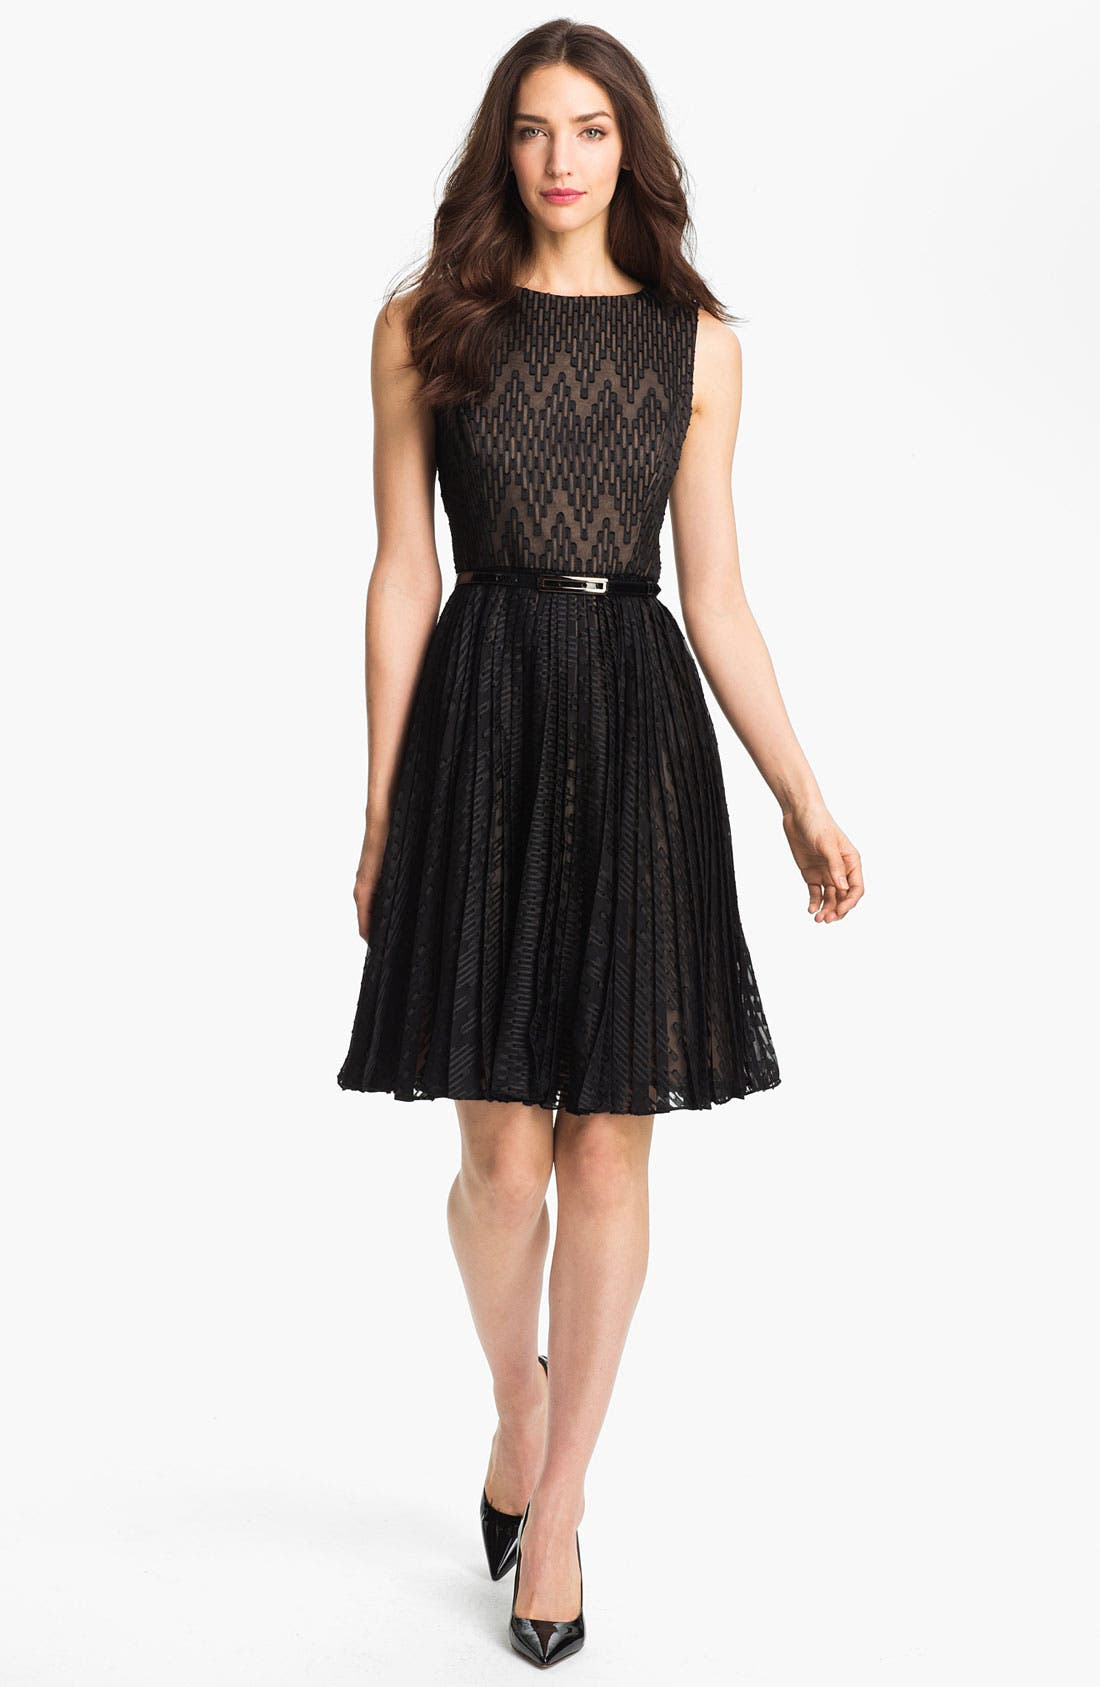 Main Image - Adrianna Papell Textured Fit & Flare Dress (Regular & Petite)